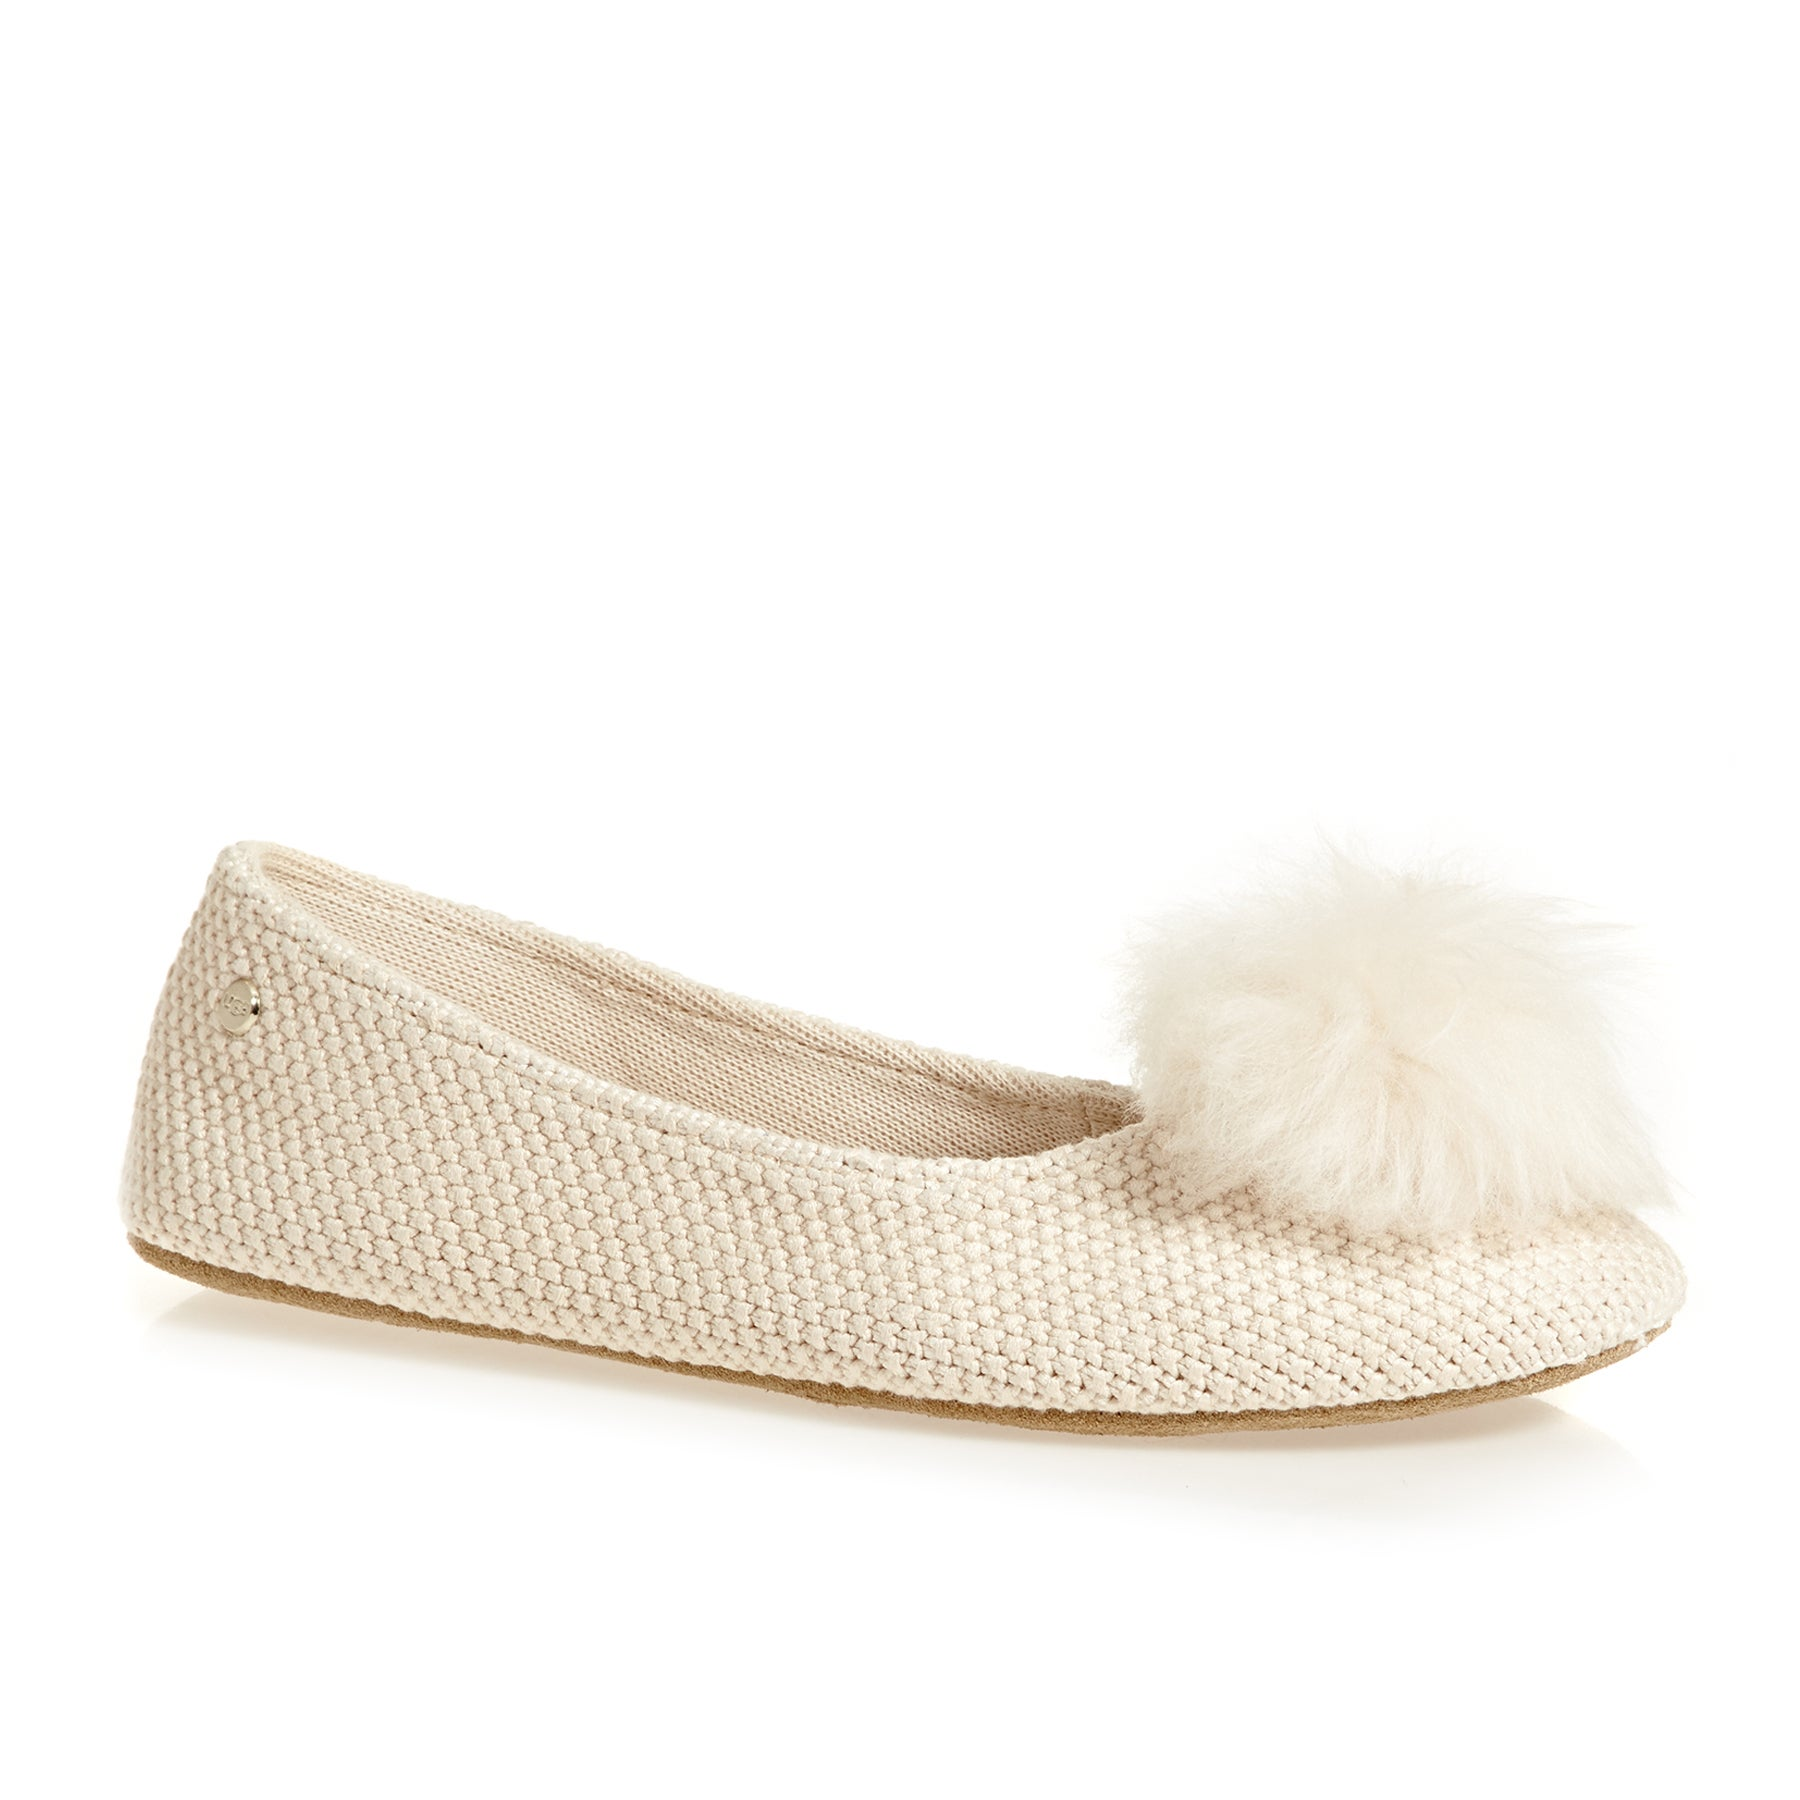 74d5d0ff001 UGG Andi Womens Slippers   Free Delivery Options